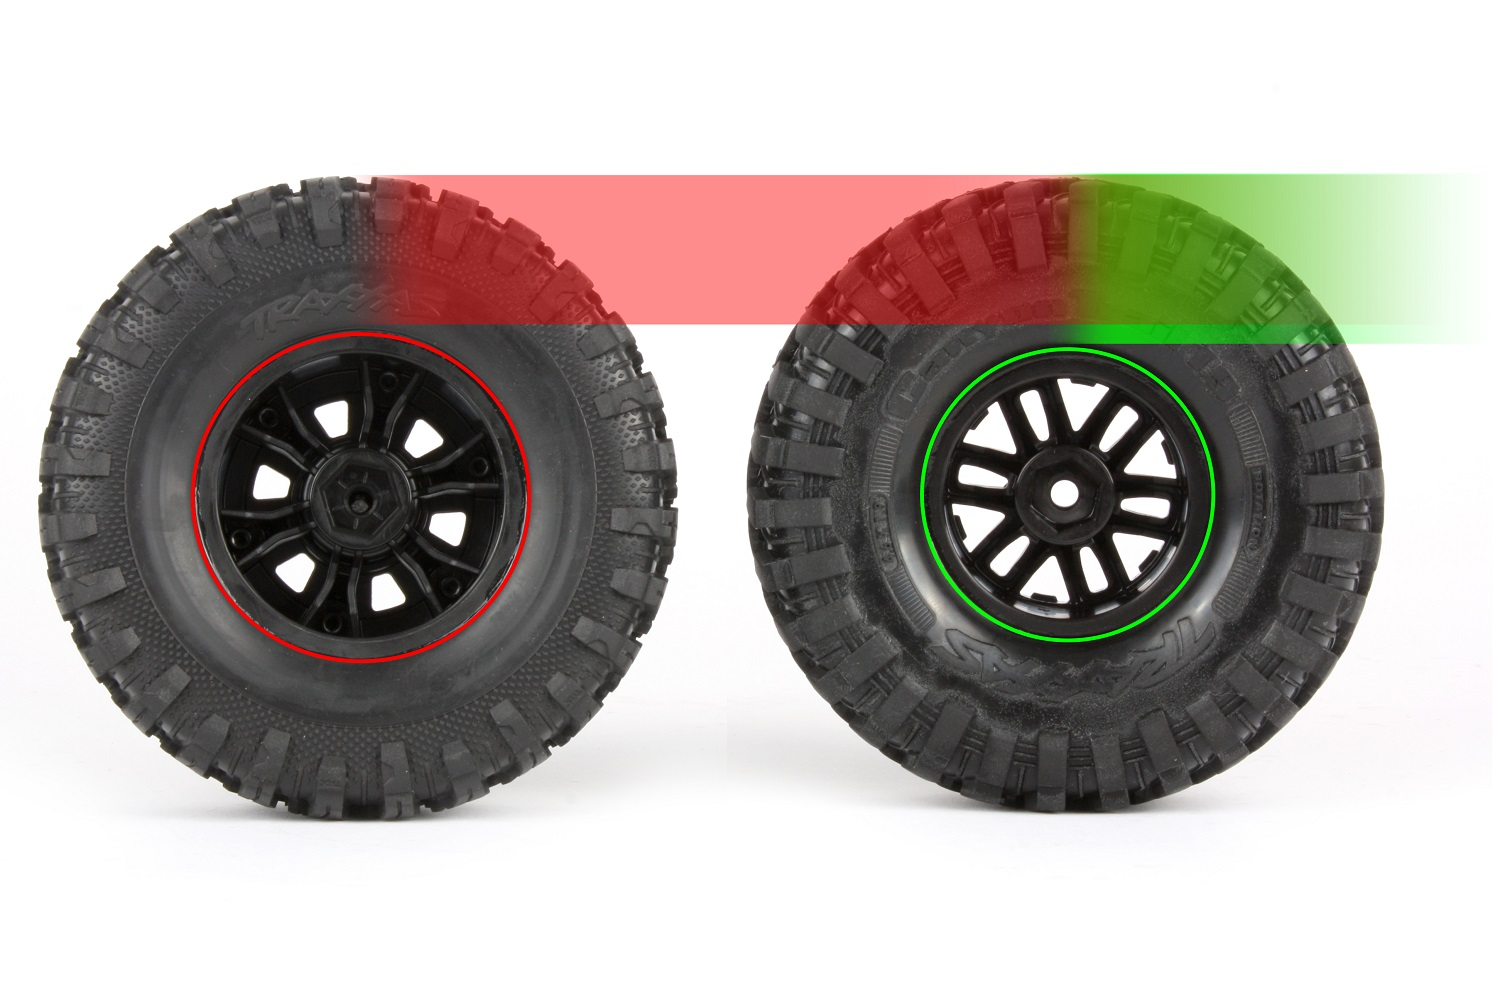 Canyon Trail tires have higher sidewalls